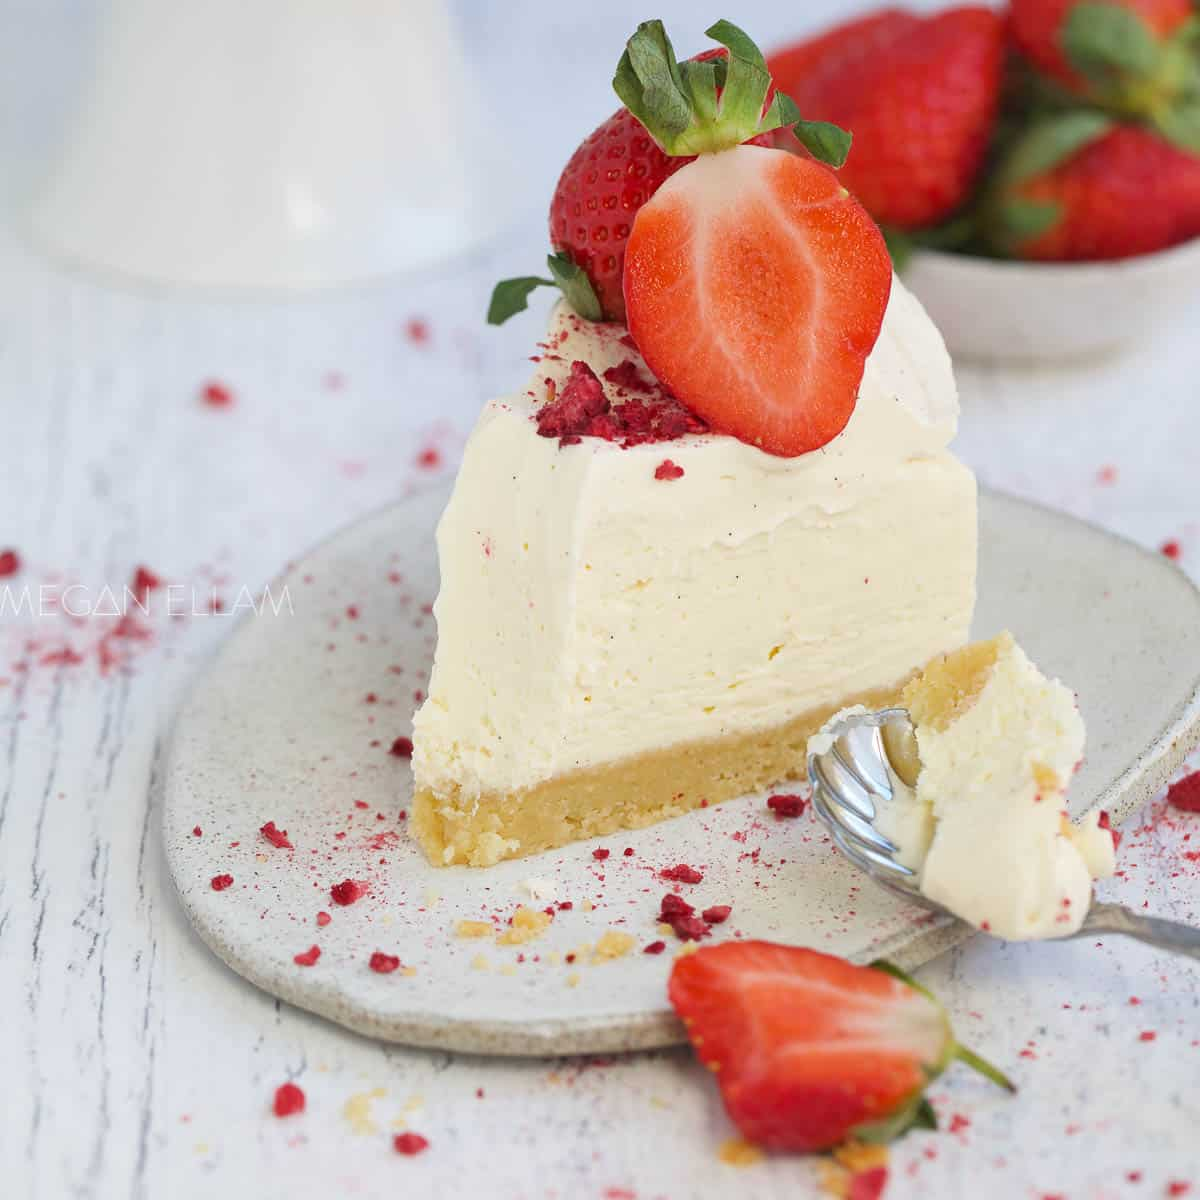 No Bake Keto Cheesecake on a white plate with strawberries.